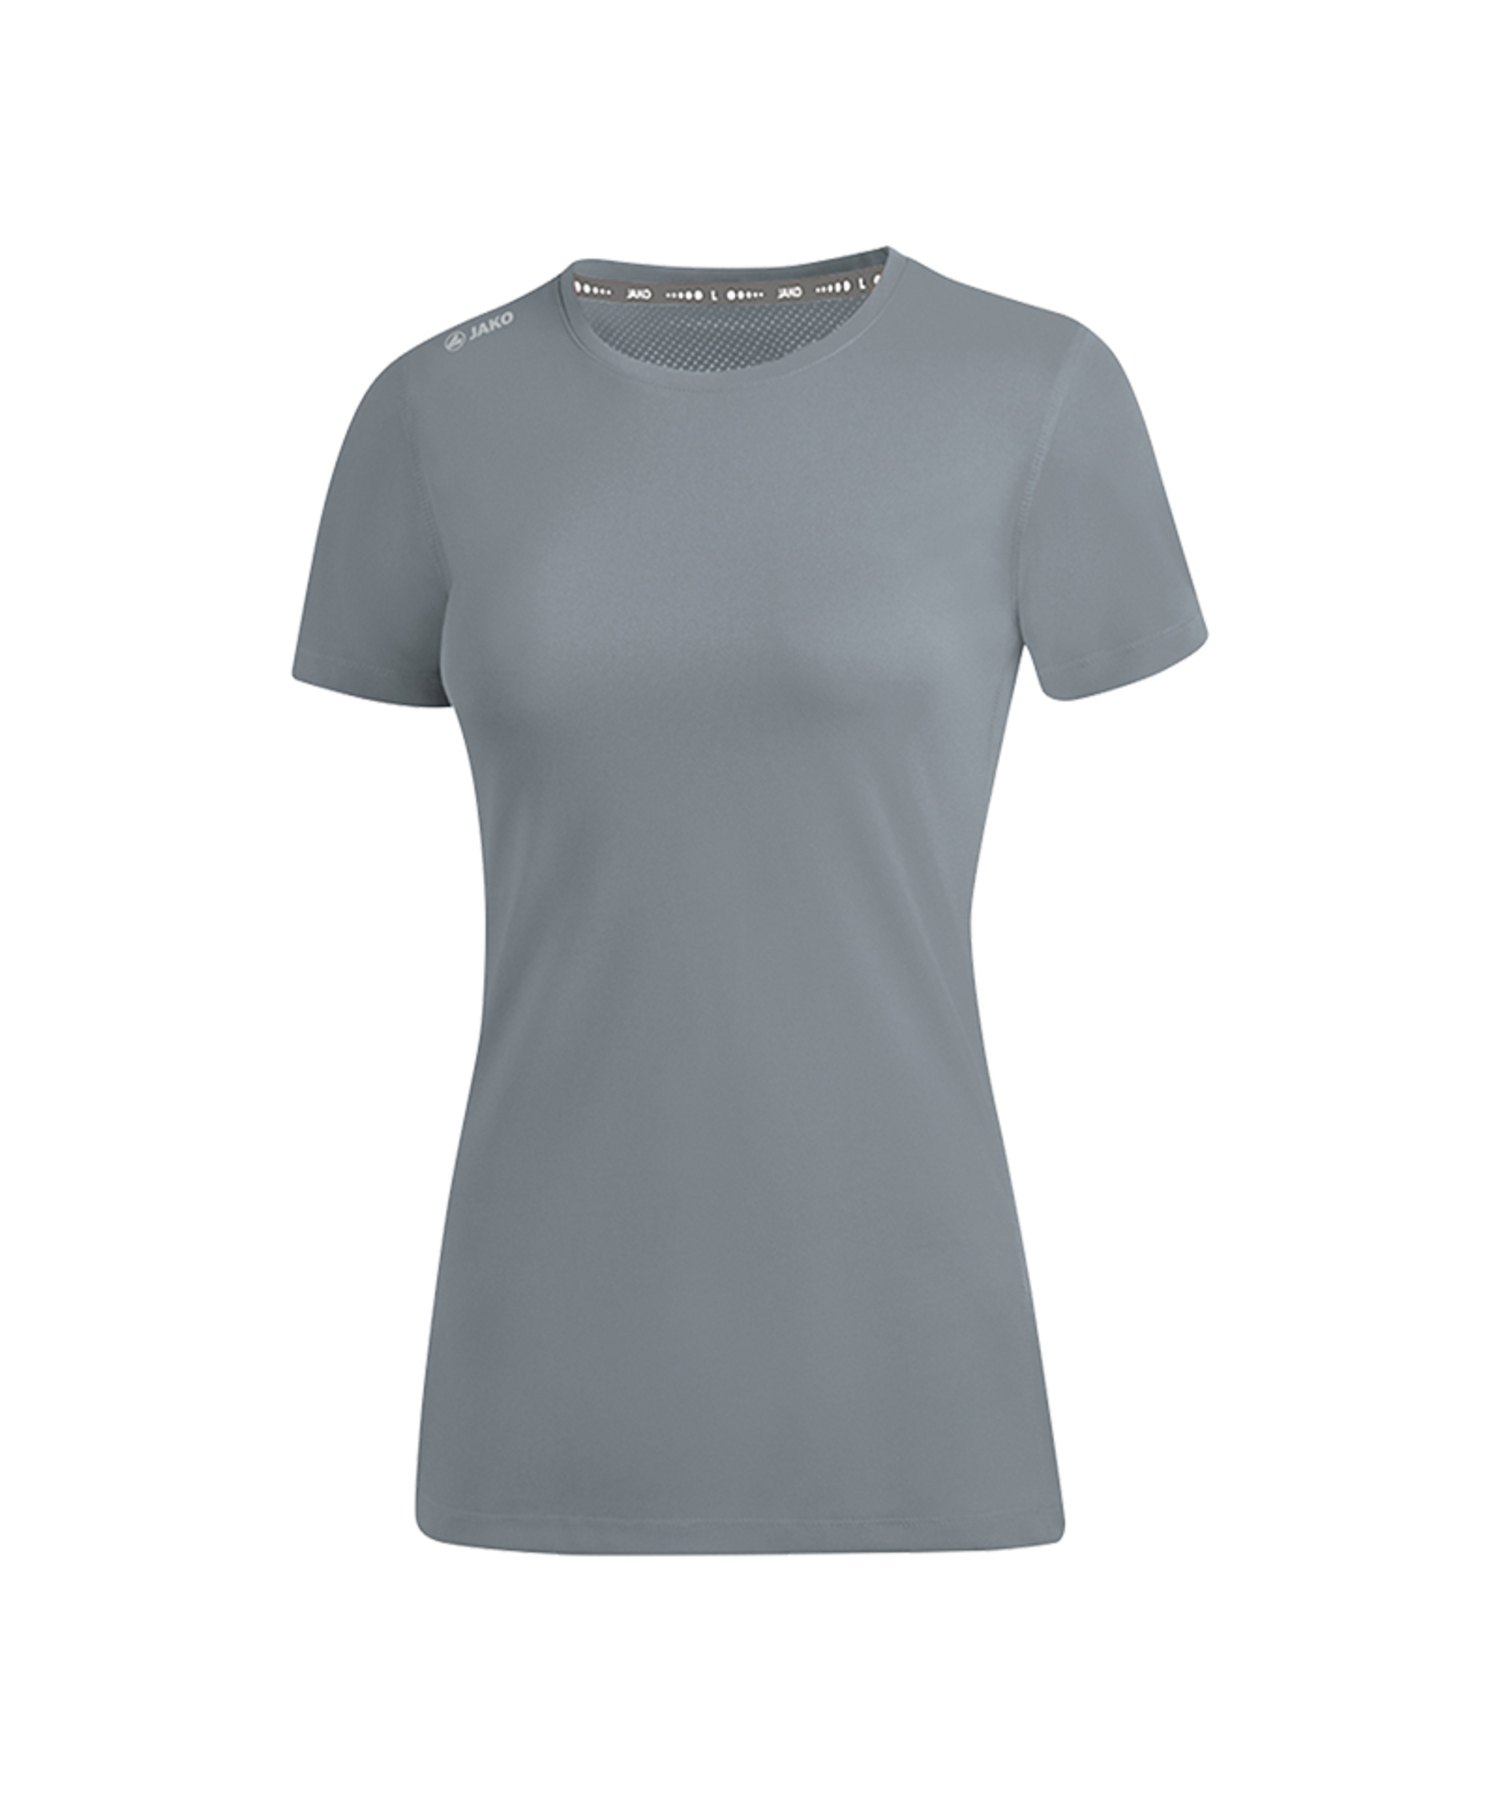 Jako Run 2.0 T-Shirt Running Damen Grau F40 - Grau